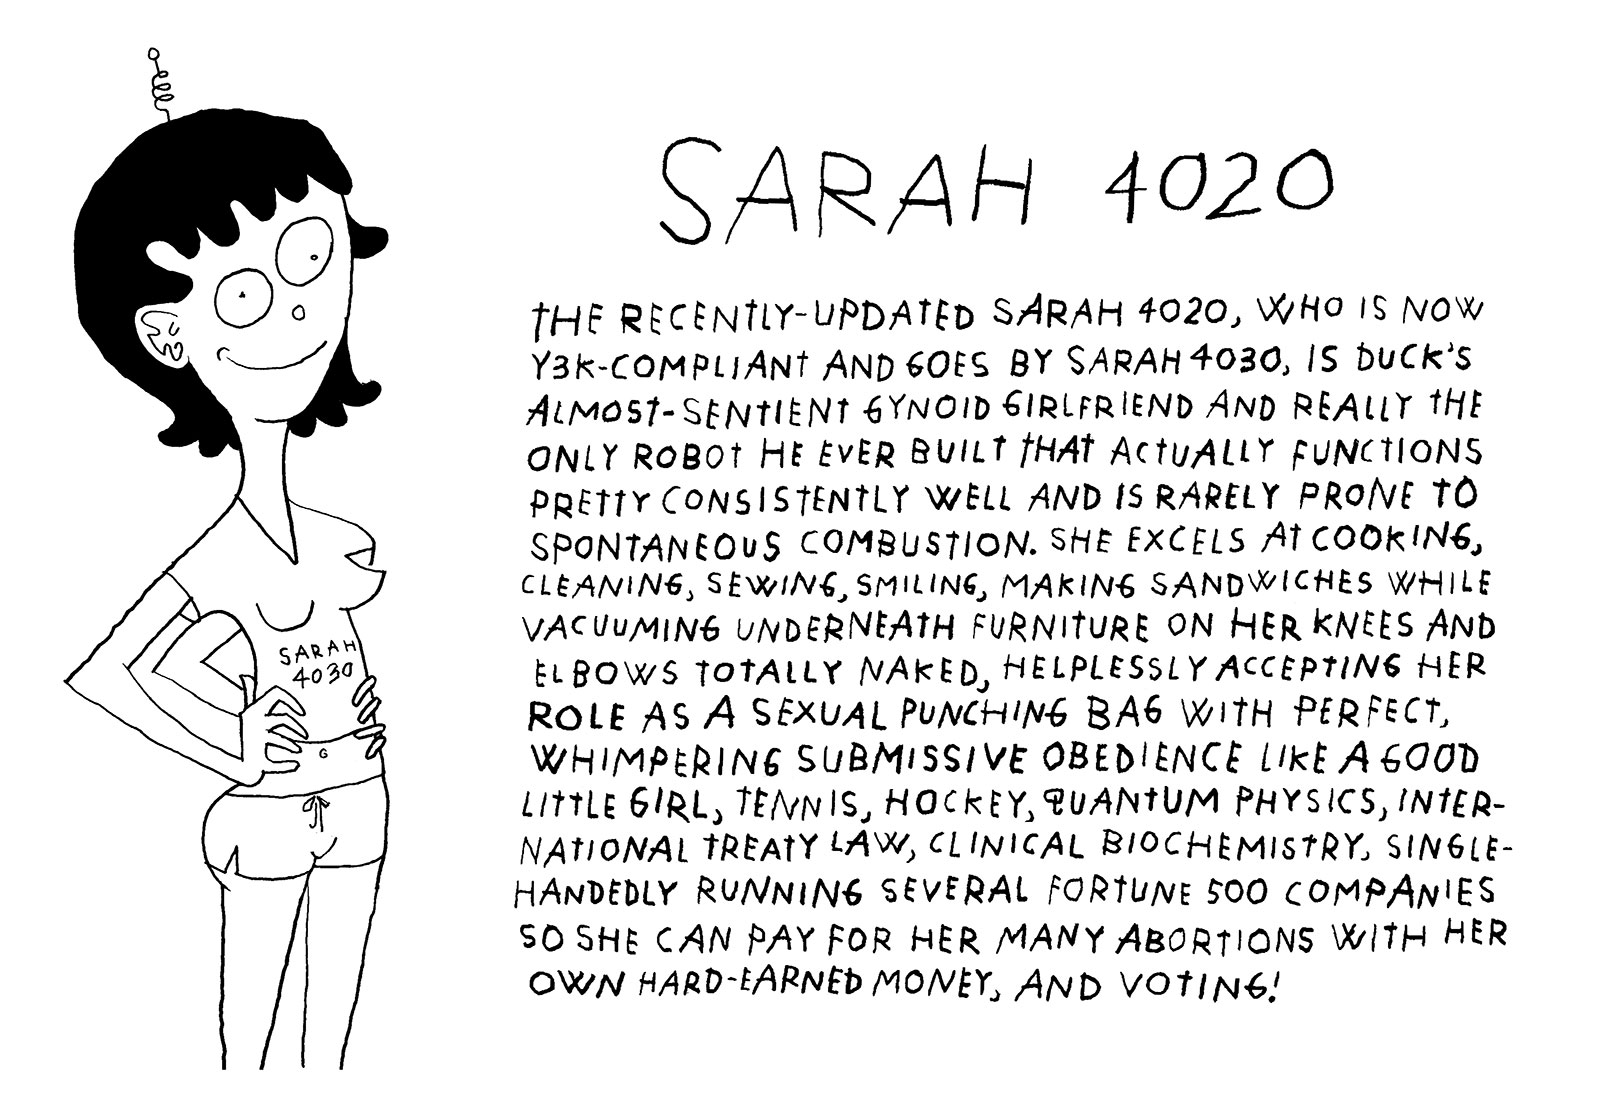 The recently-updated Sarah 4020, who is now Y3K-compliant and goes by Sarah 4030, is Duck's almost-sentient gynoid girlfriend and really the only robot he ever built that actually functions pretty consistently well and is rarely prone to spontaneous combustion. She excels at cooking, cleaning, sewing, smiling, making sandwiches while vacuuming underneath furniture on her knees and elbows totally naked, helplessly accepting her role as a sexual punching bag with perfect, whimpering submissive obedience like a good little girl, tennis, hockey, quantum physics, international treaty law, clinical biochemistry, single-handedly running several Fortune 500 companies so she can pay for her many abortions with her own hard-earned money, and voting!